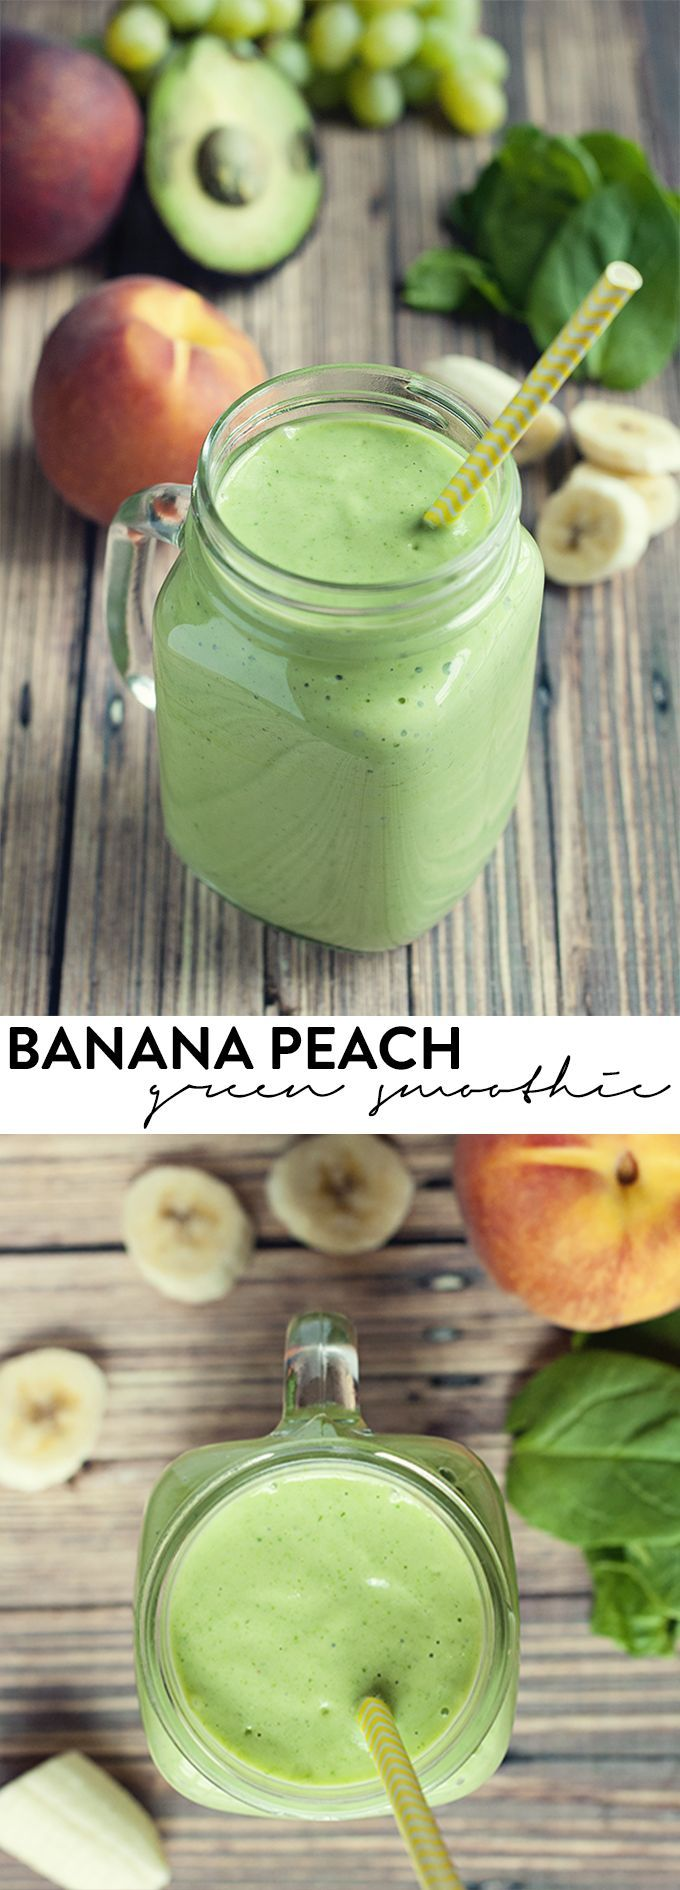 Green smoothies don't have to be gross, and this banana peach green smoothie will have you wanting more!